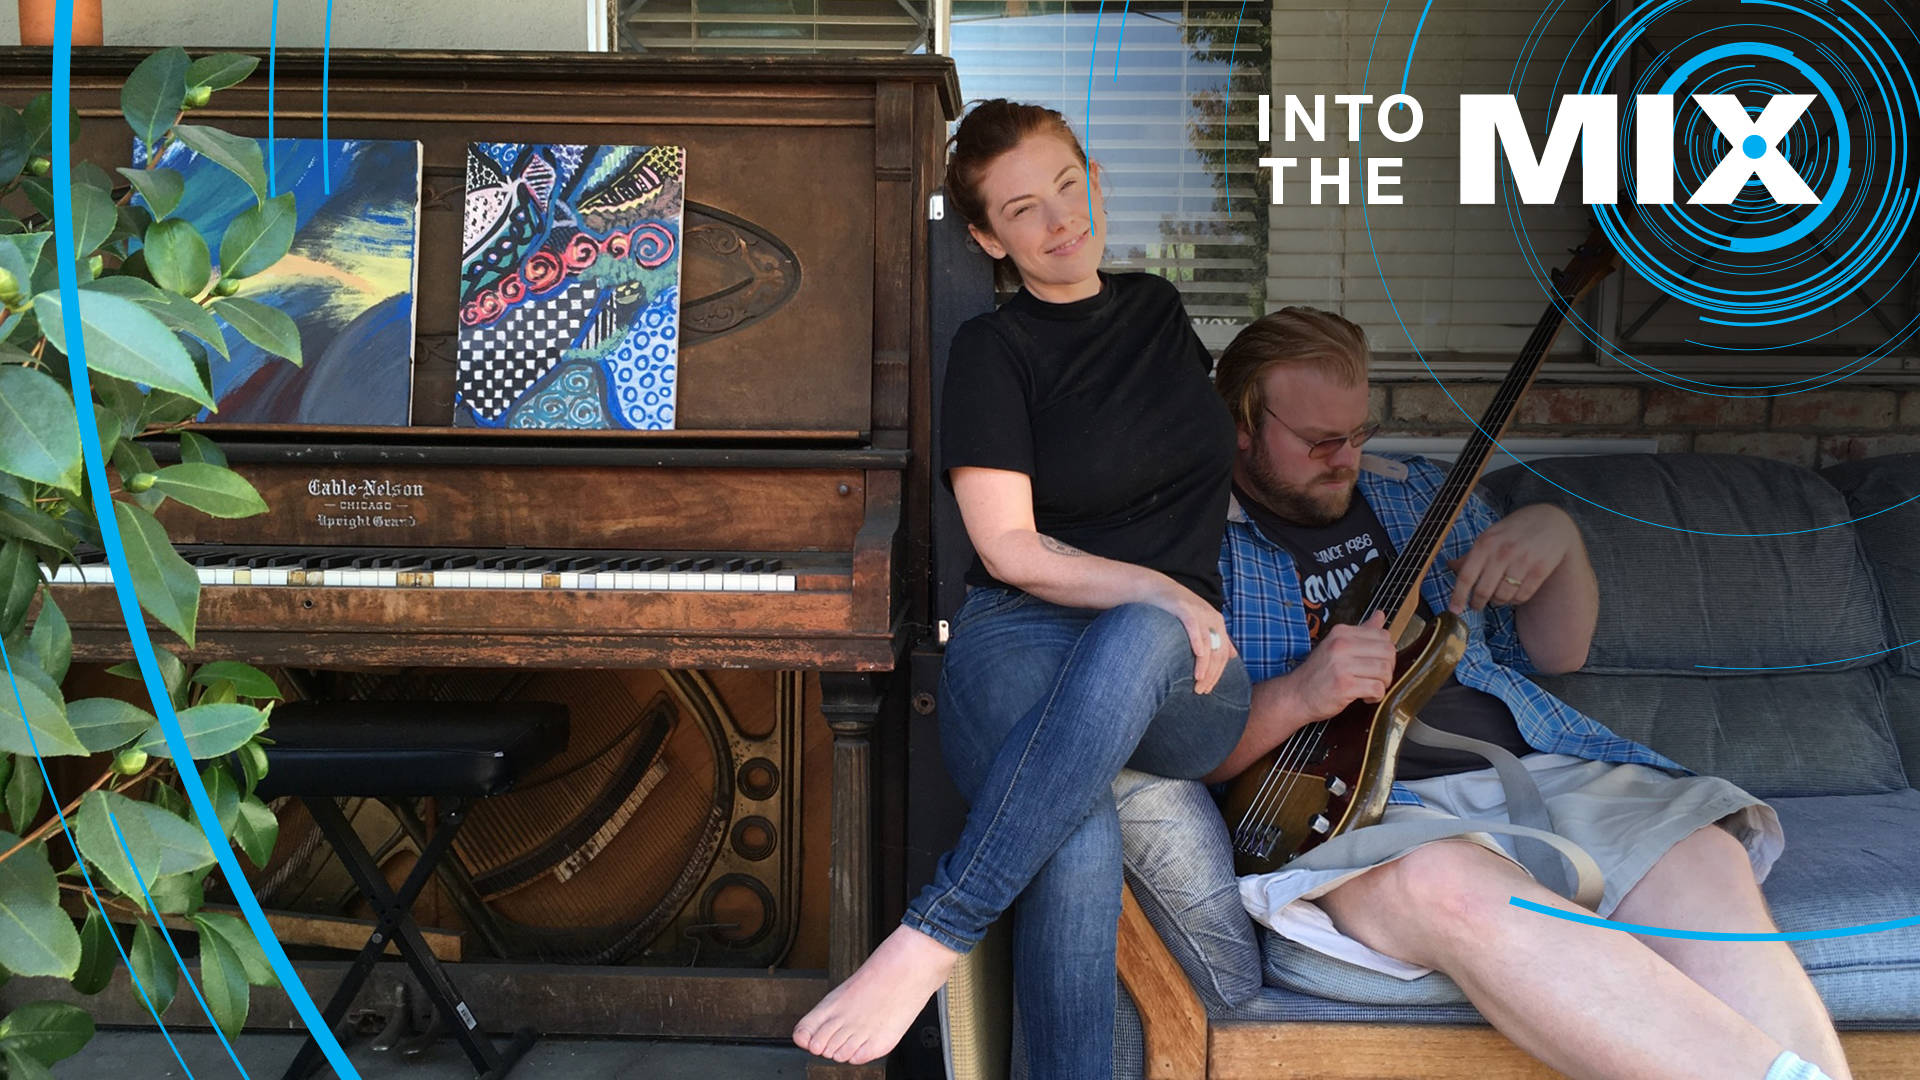 Blues musician and producer Kid Andersen and his wife, singer Lisa Leuschner, hang out on the porch outside their home in San Jose. Photo: Rachael Myrow/KQED